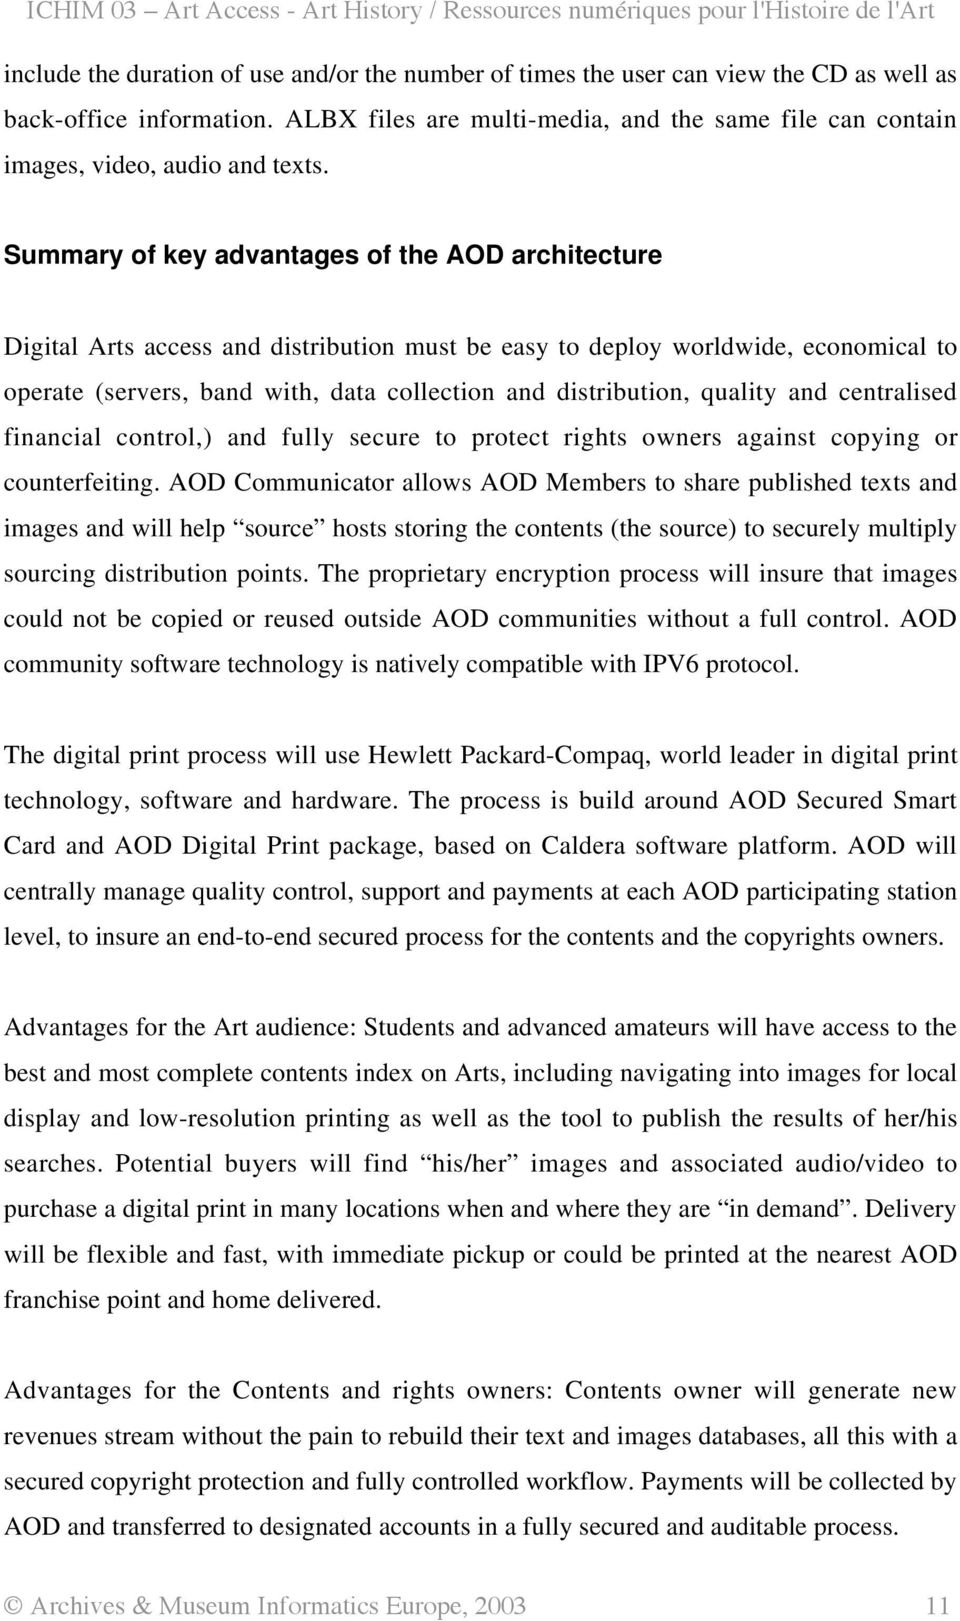 Summary of key advantages of the AOD architecture Digital Arts access and distribution must be easy to deploy worldwide, economical to operate (servers, band with, data collection and distribution,